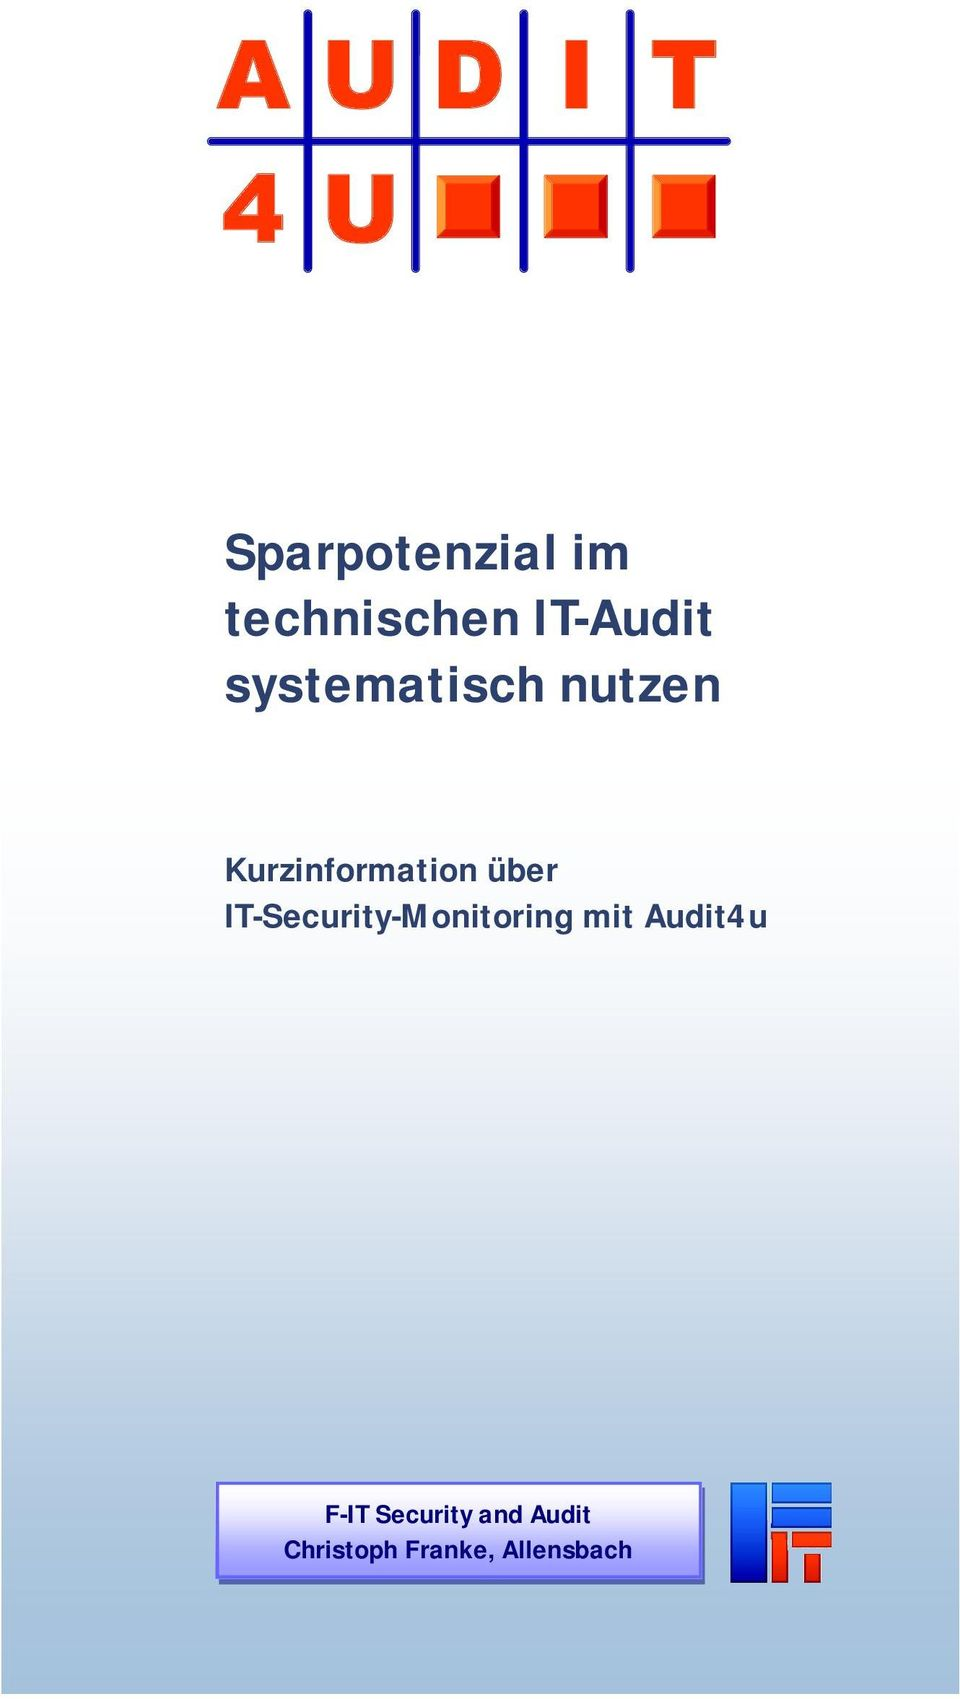 IT-Security-Monitoring mit Audit4u F-IT